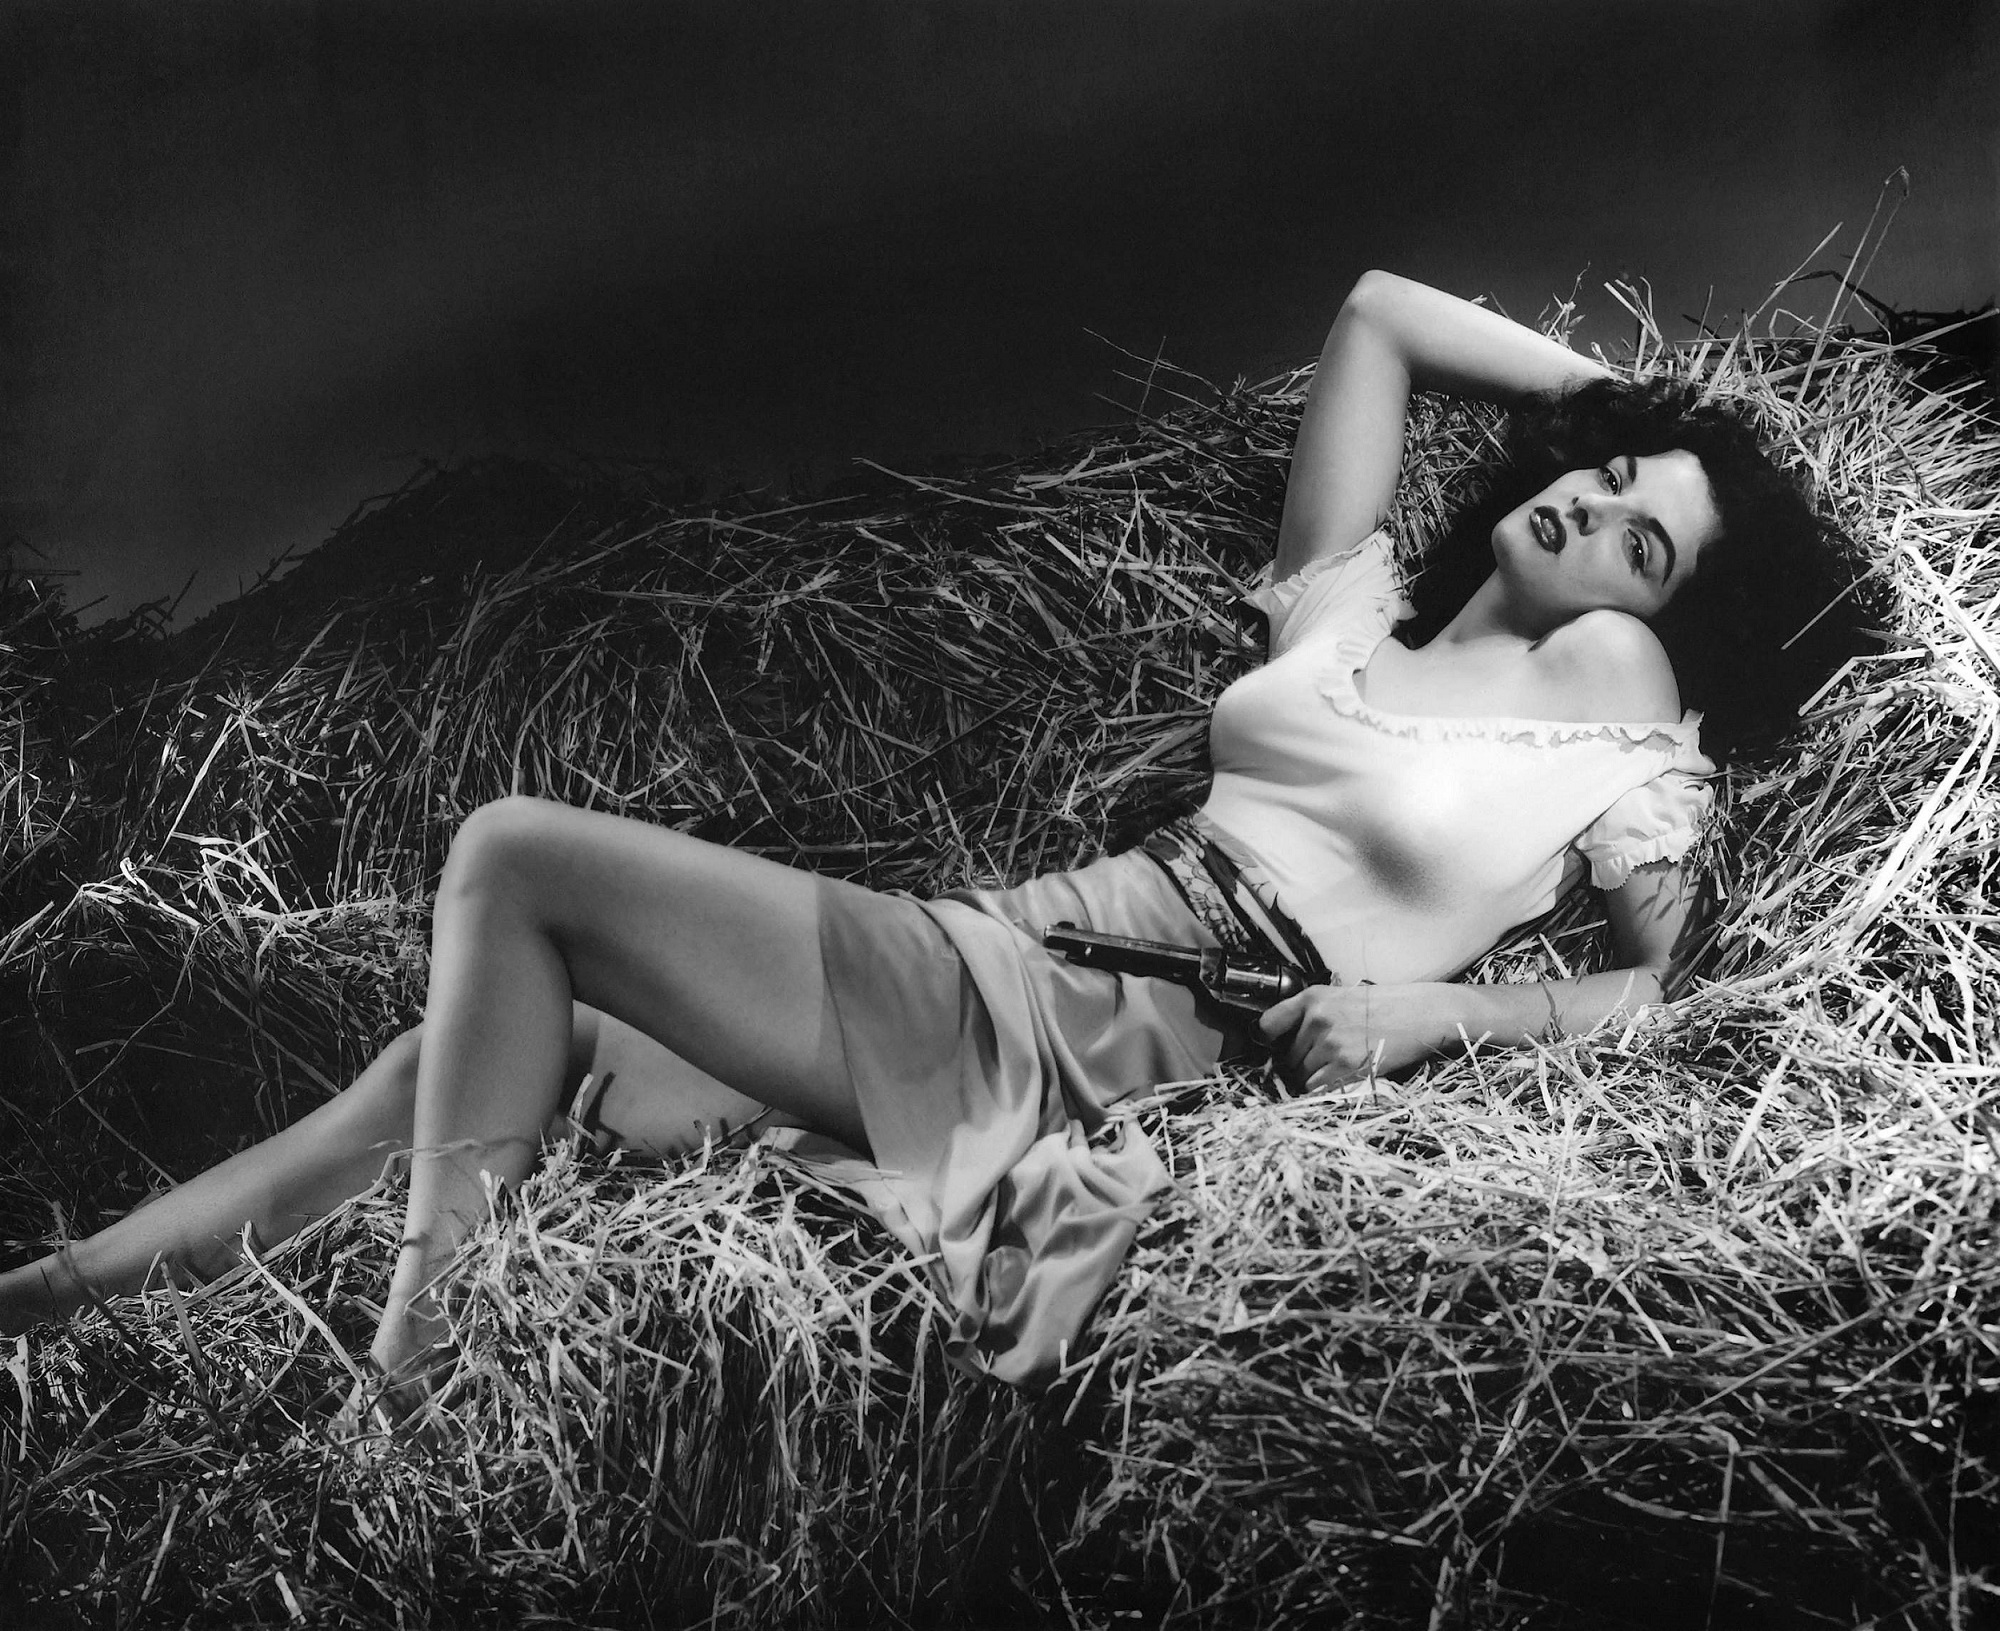 Jane Russell, Personality, Russell, Producer, Film, HQ Photo